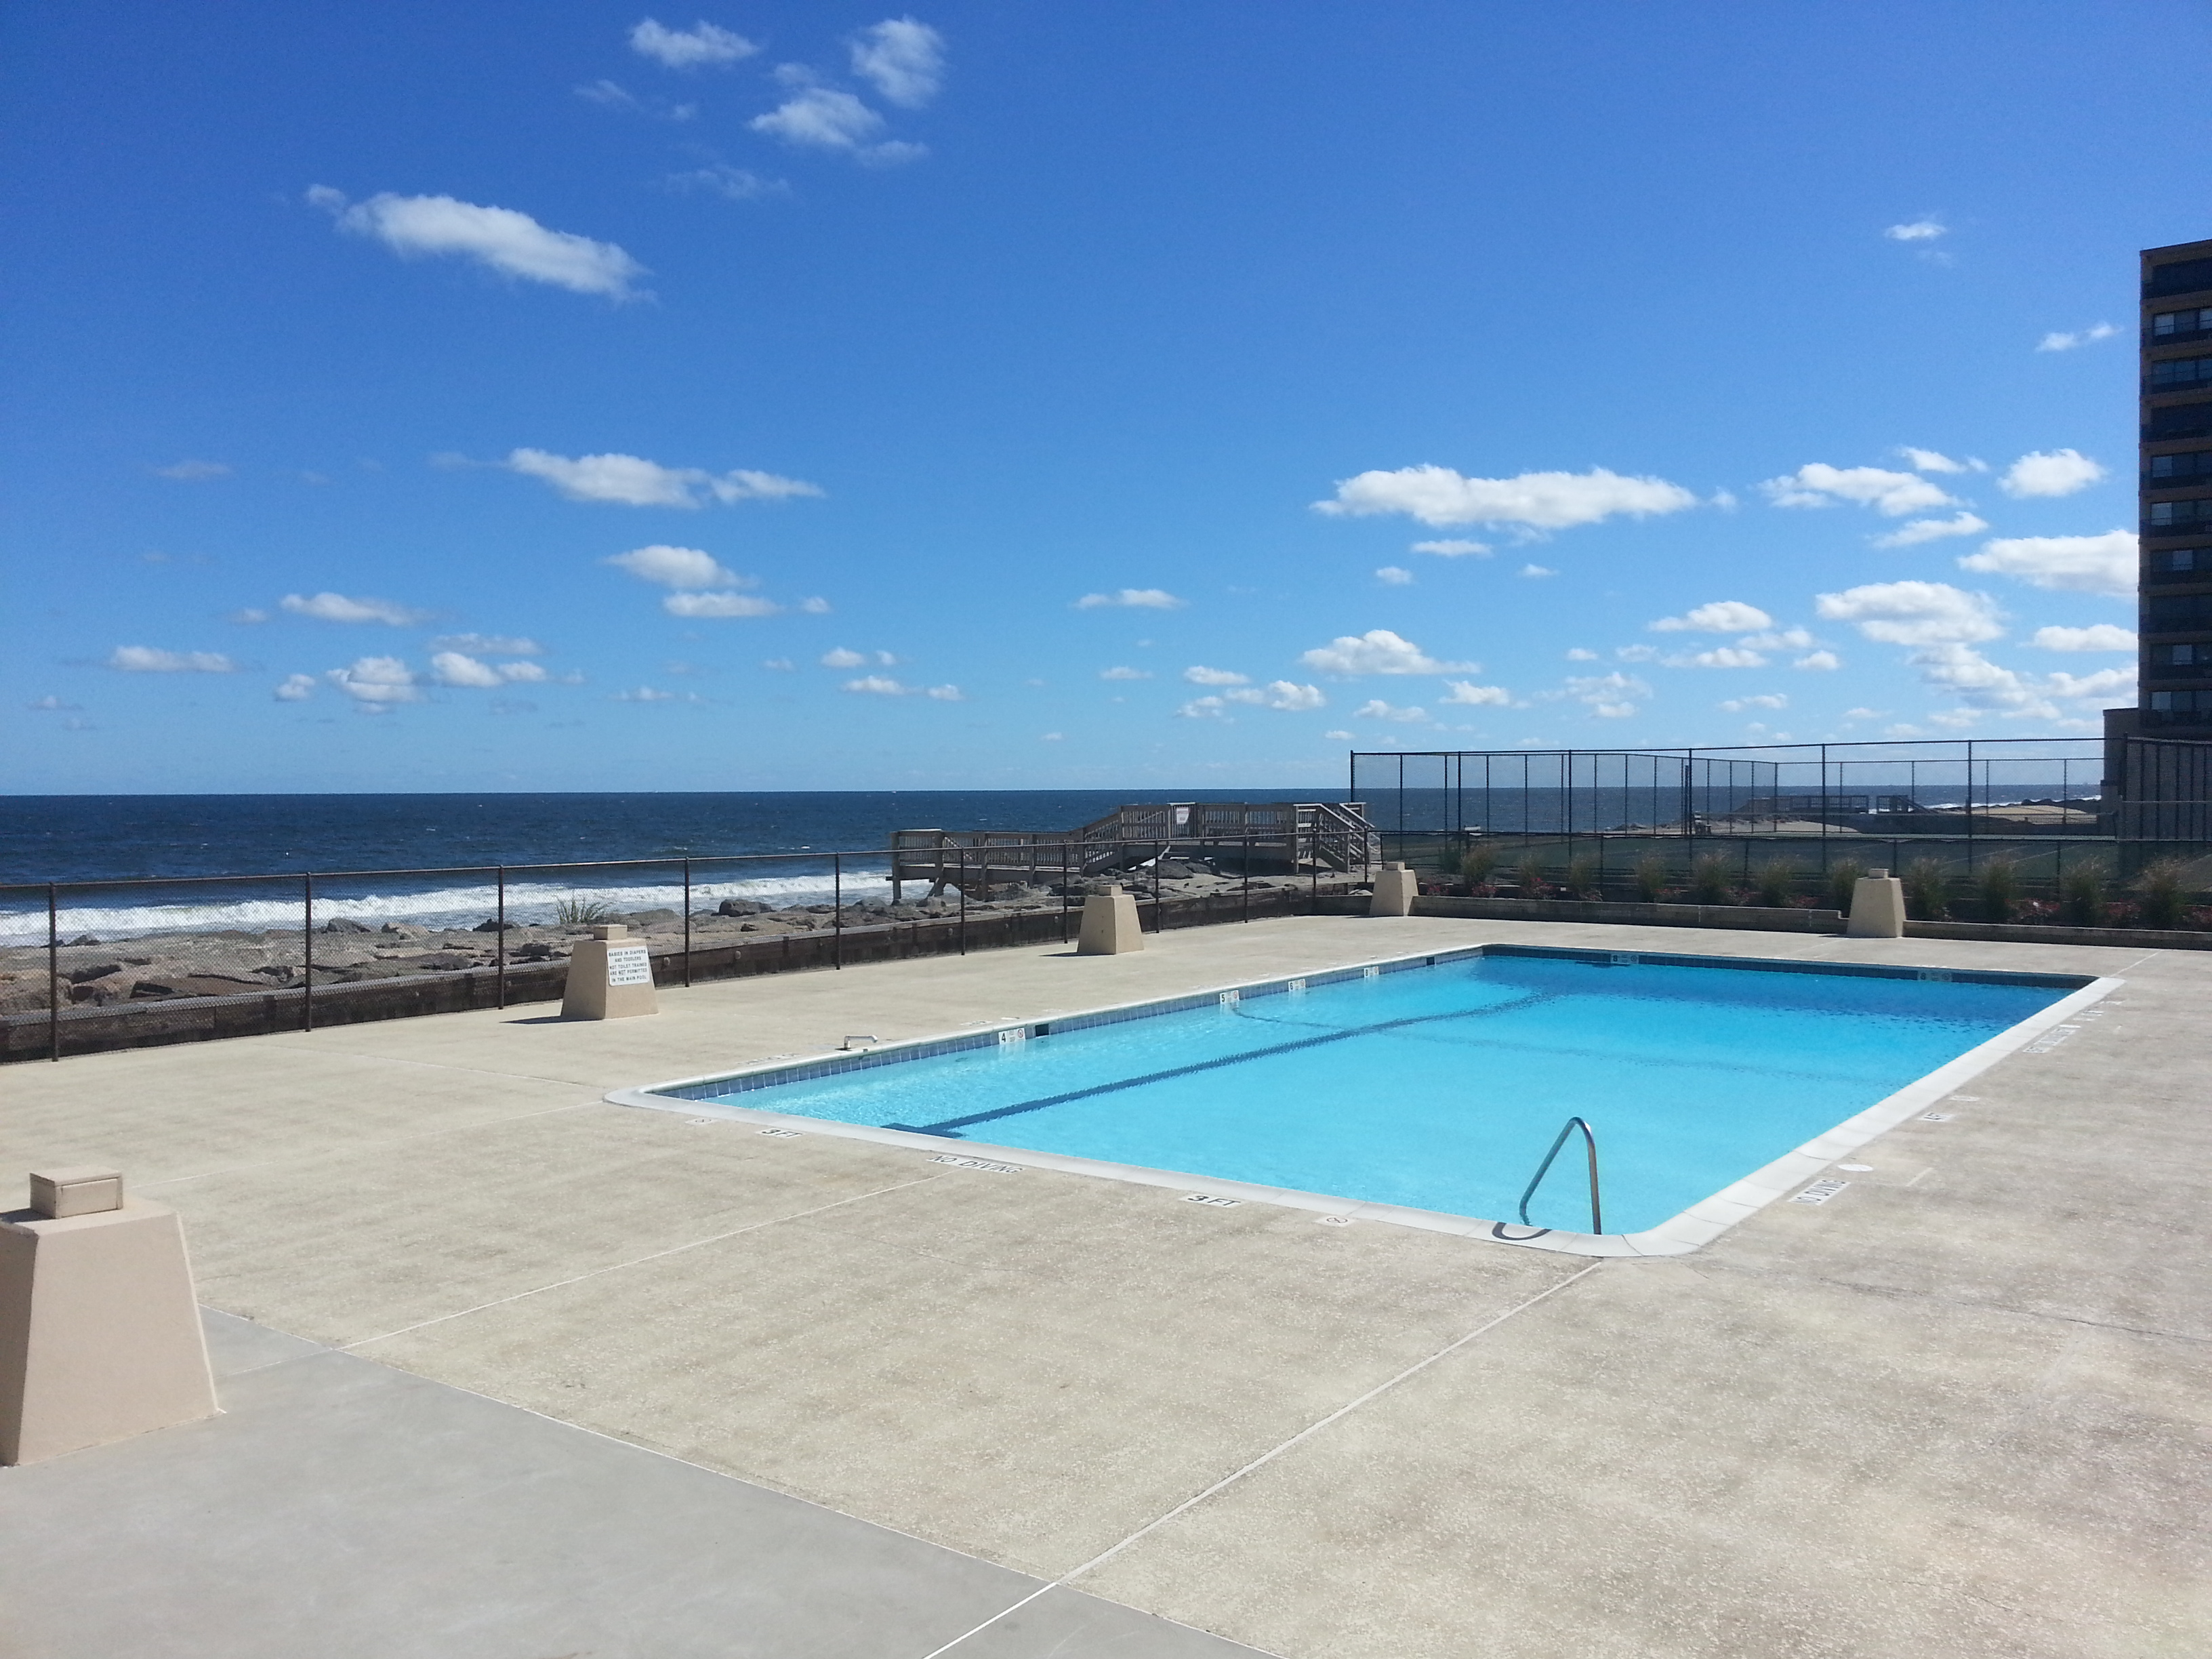 At the south end of The Admiralty is this community pool overlooking the beach and ocean.